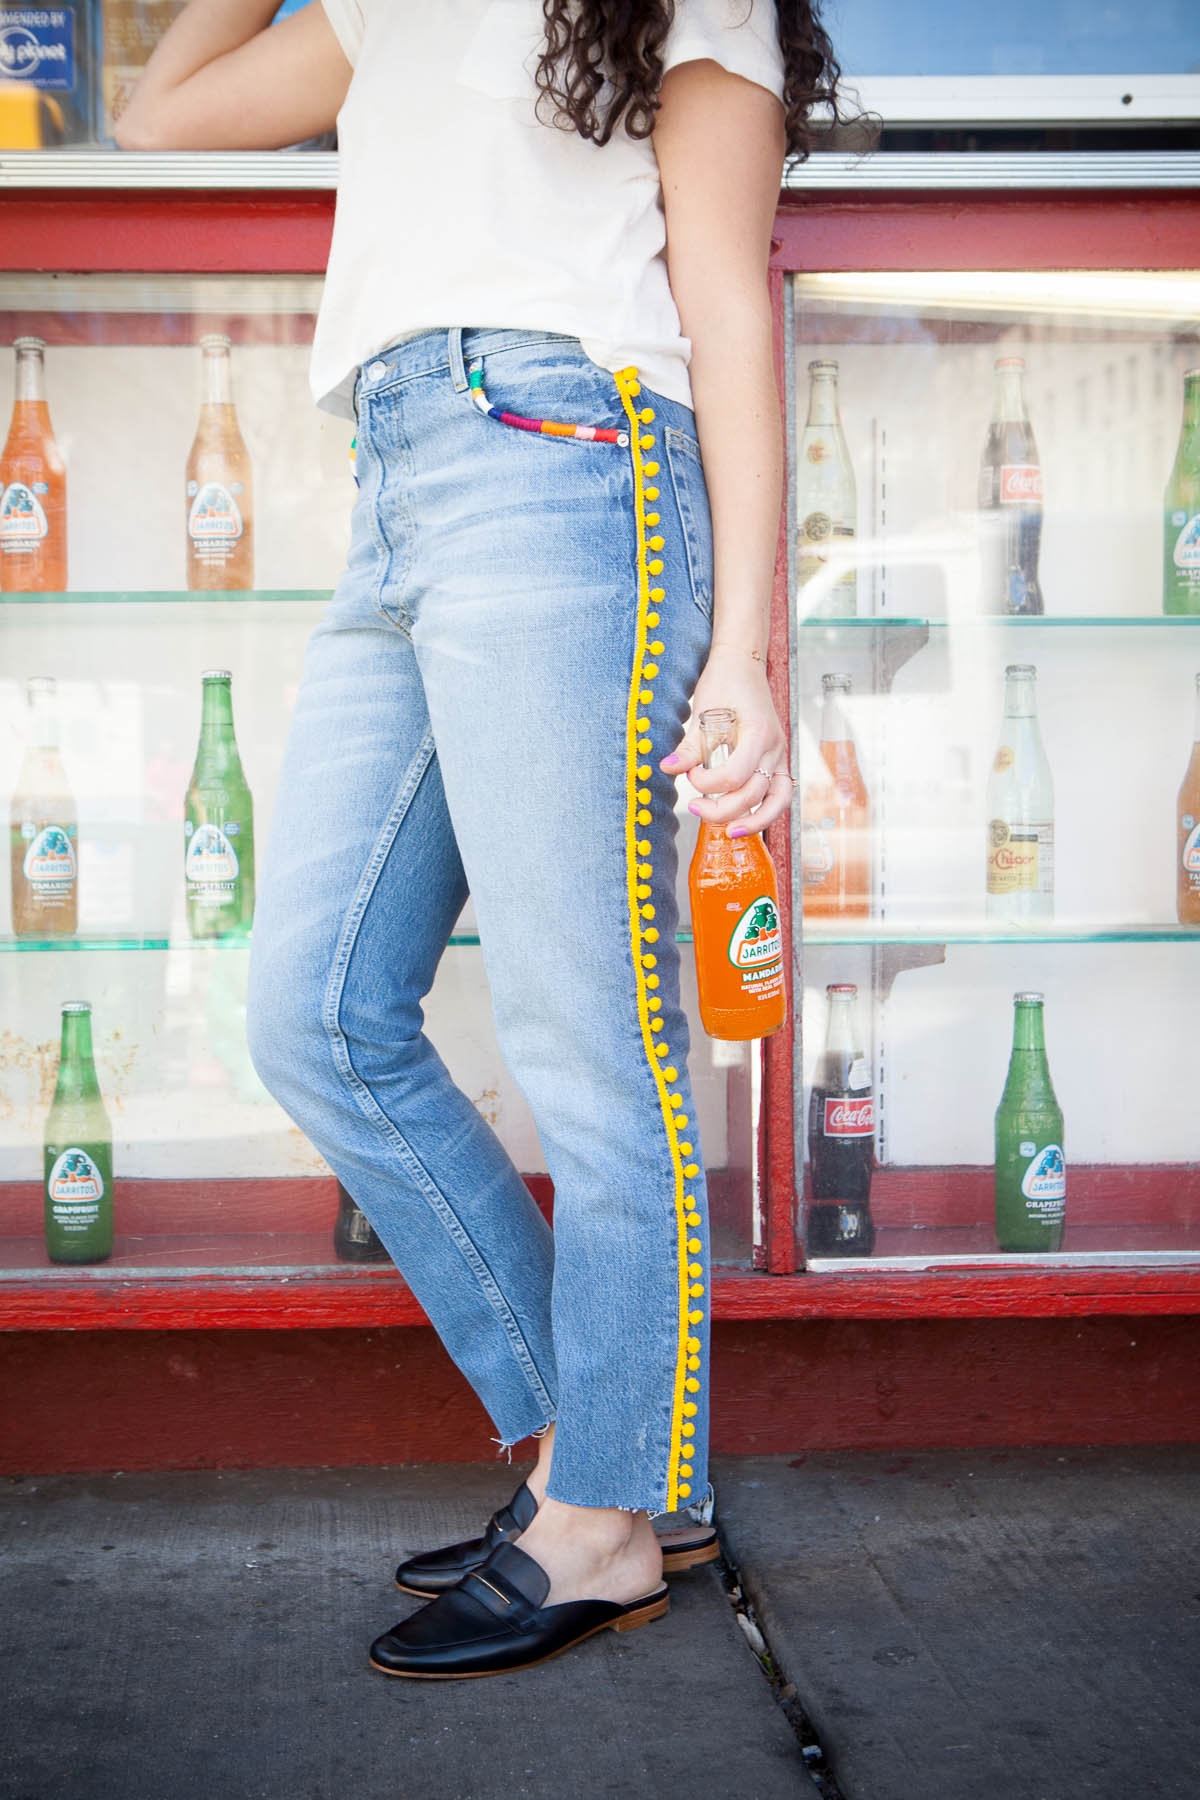 DIY with Cotton: Fiesta Jeans